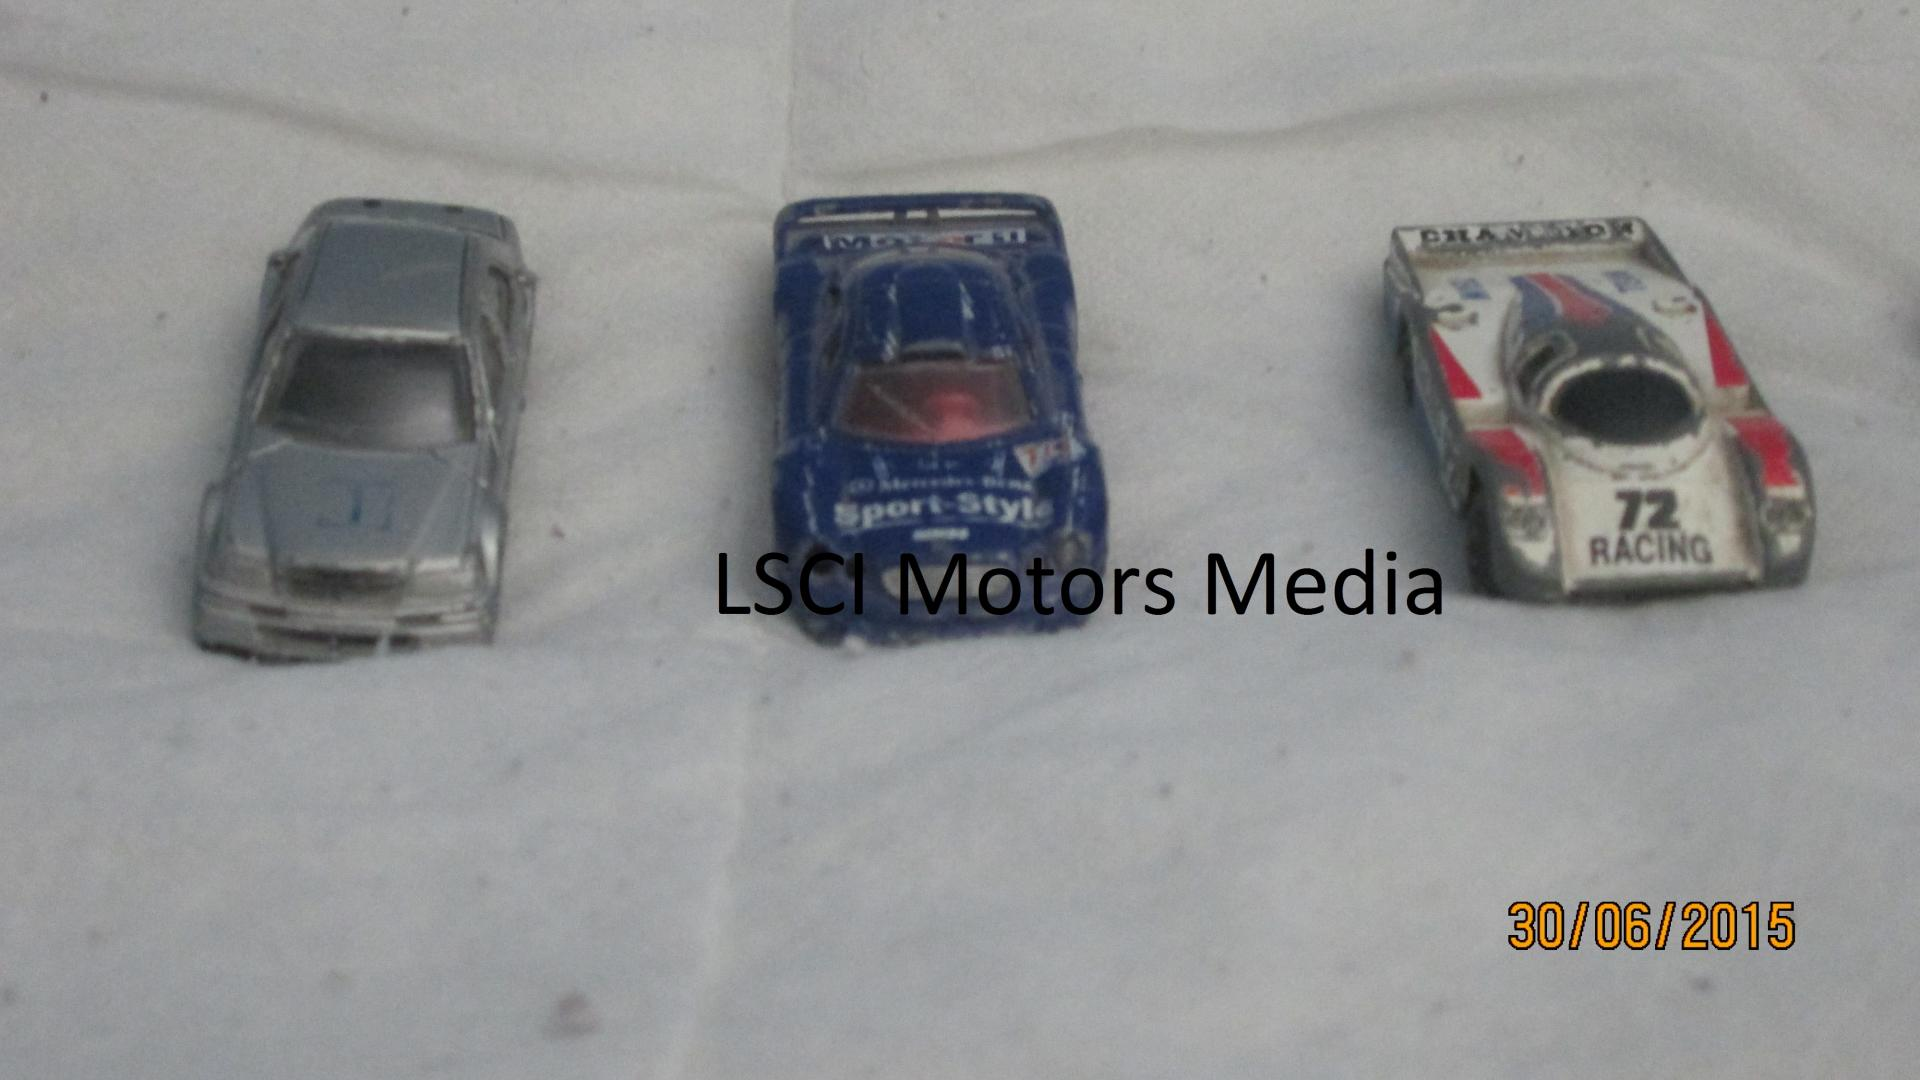 LSCIMotors Media